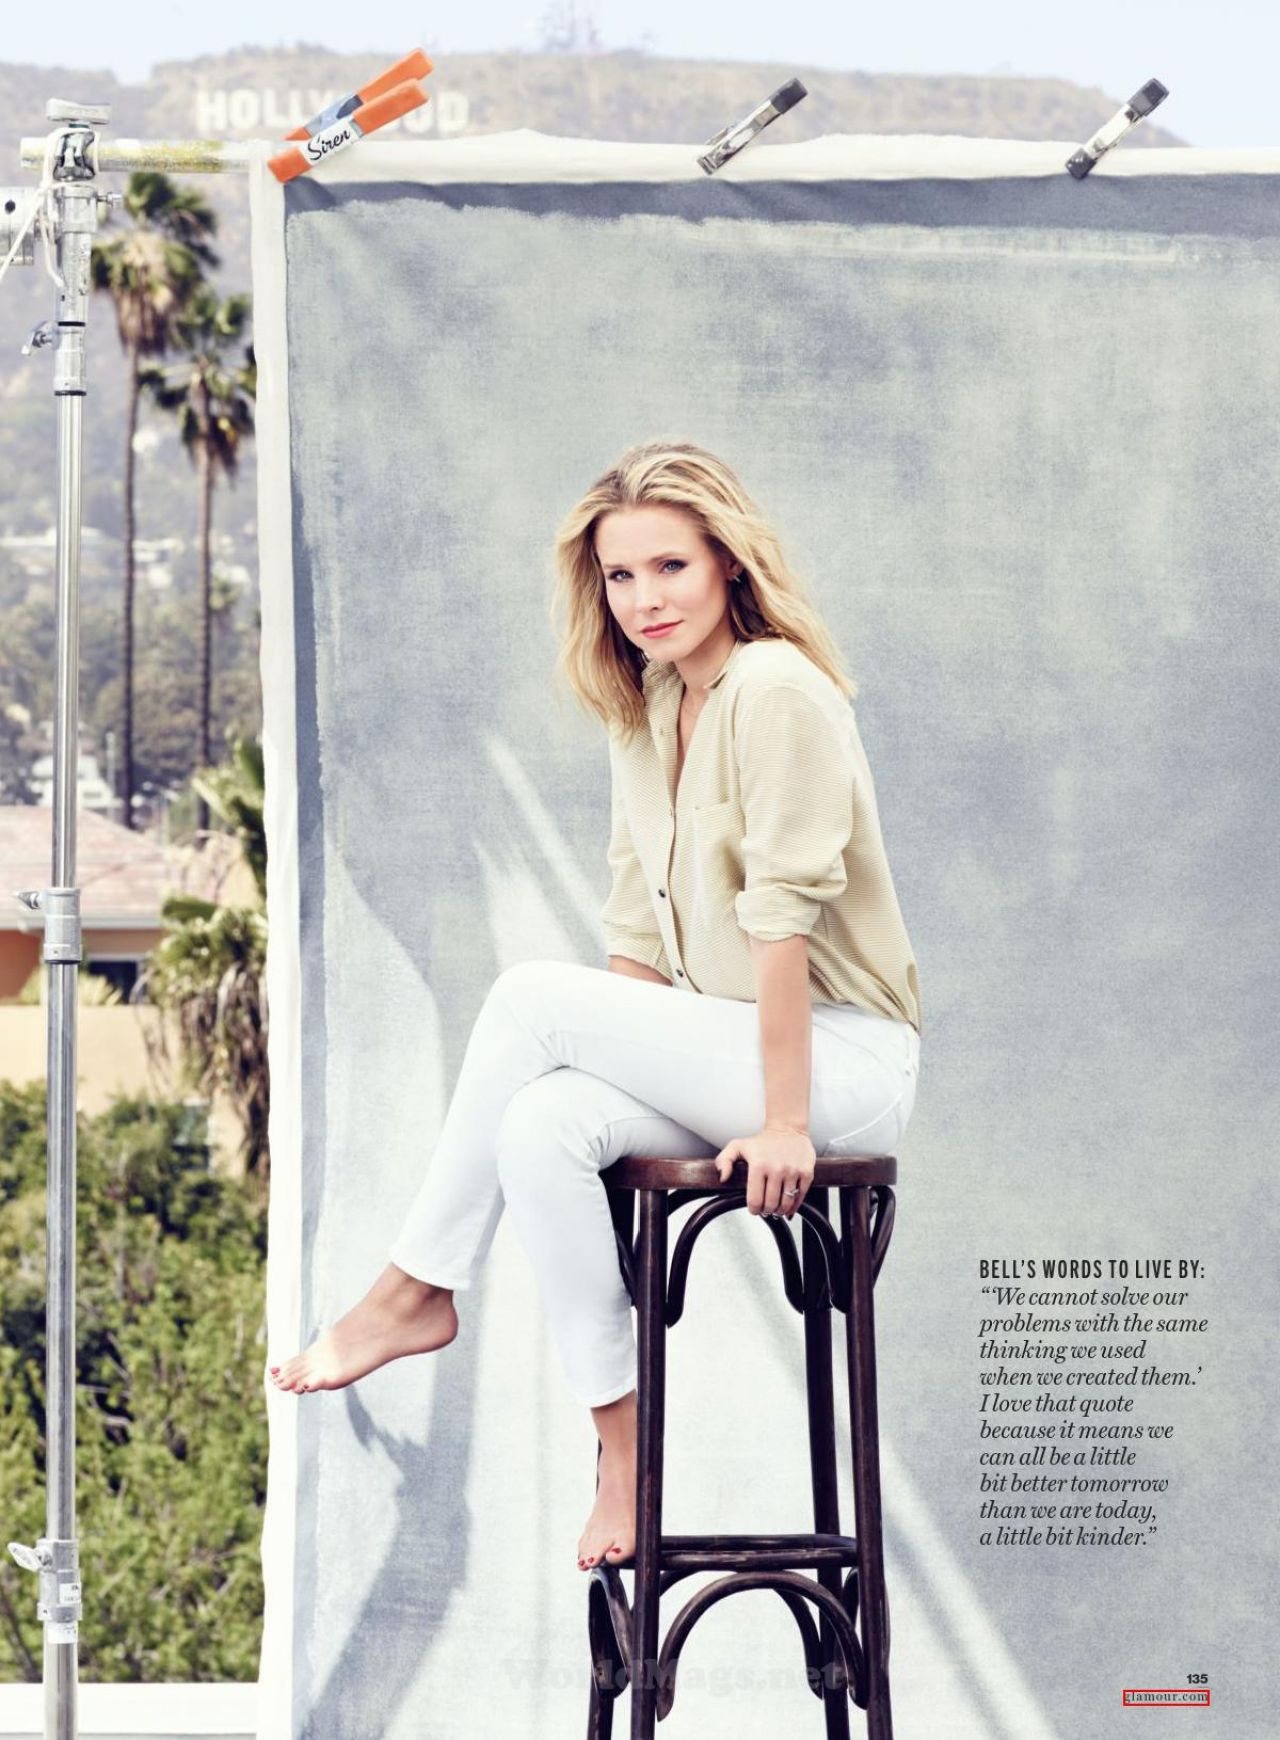 Kristen Bell - Glamour Magazine (USA) - July 2014 Issue